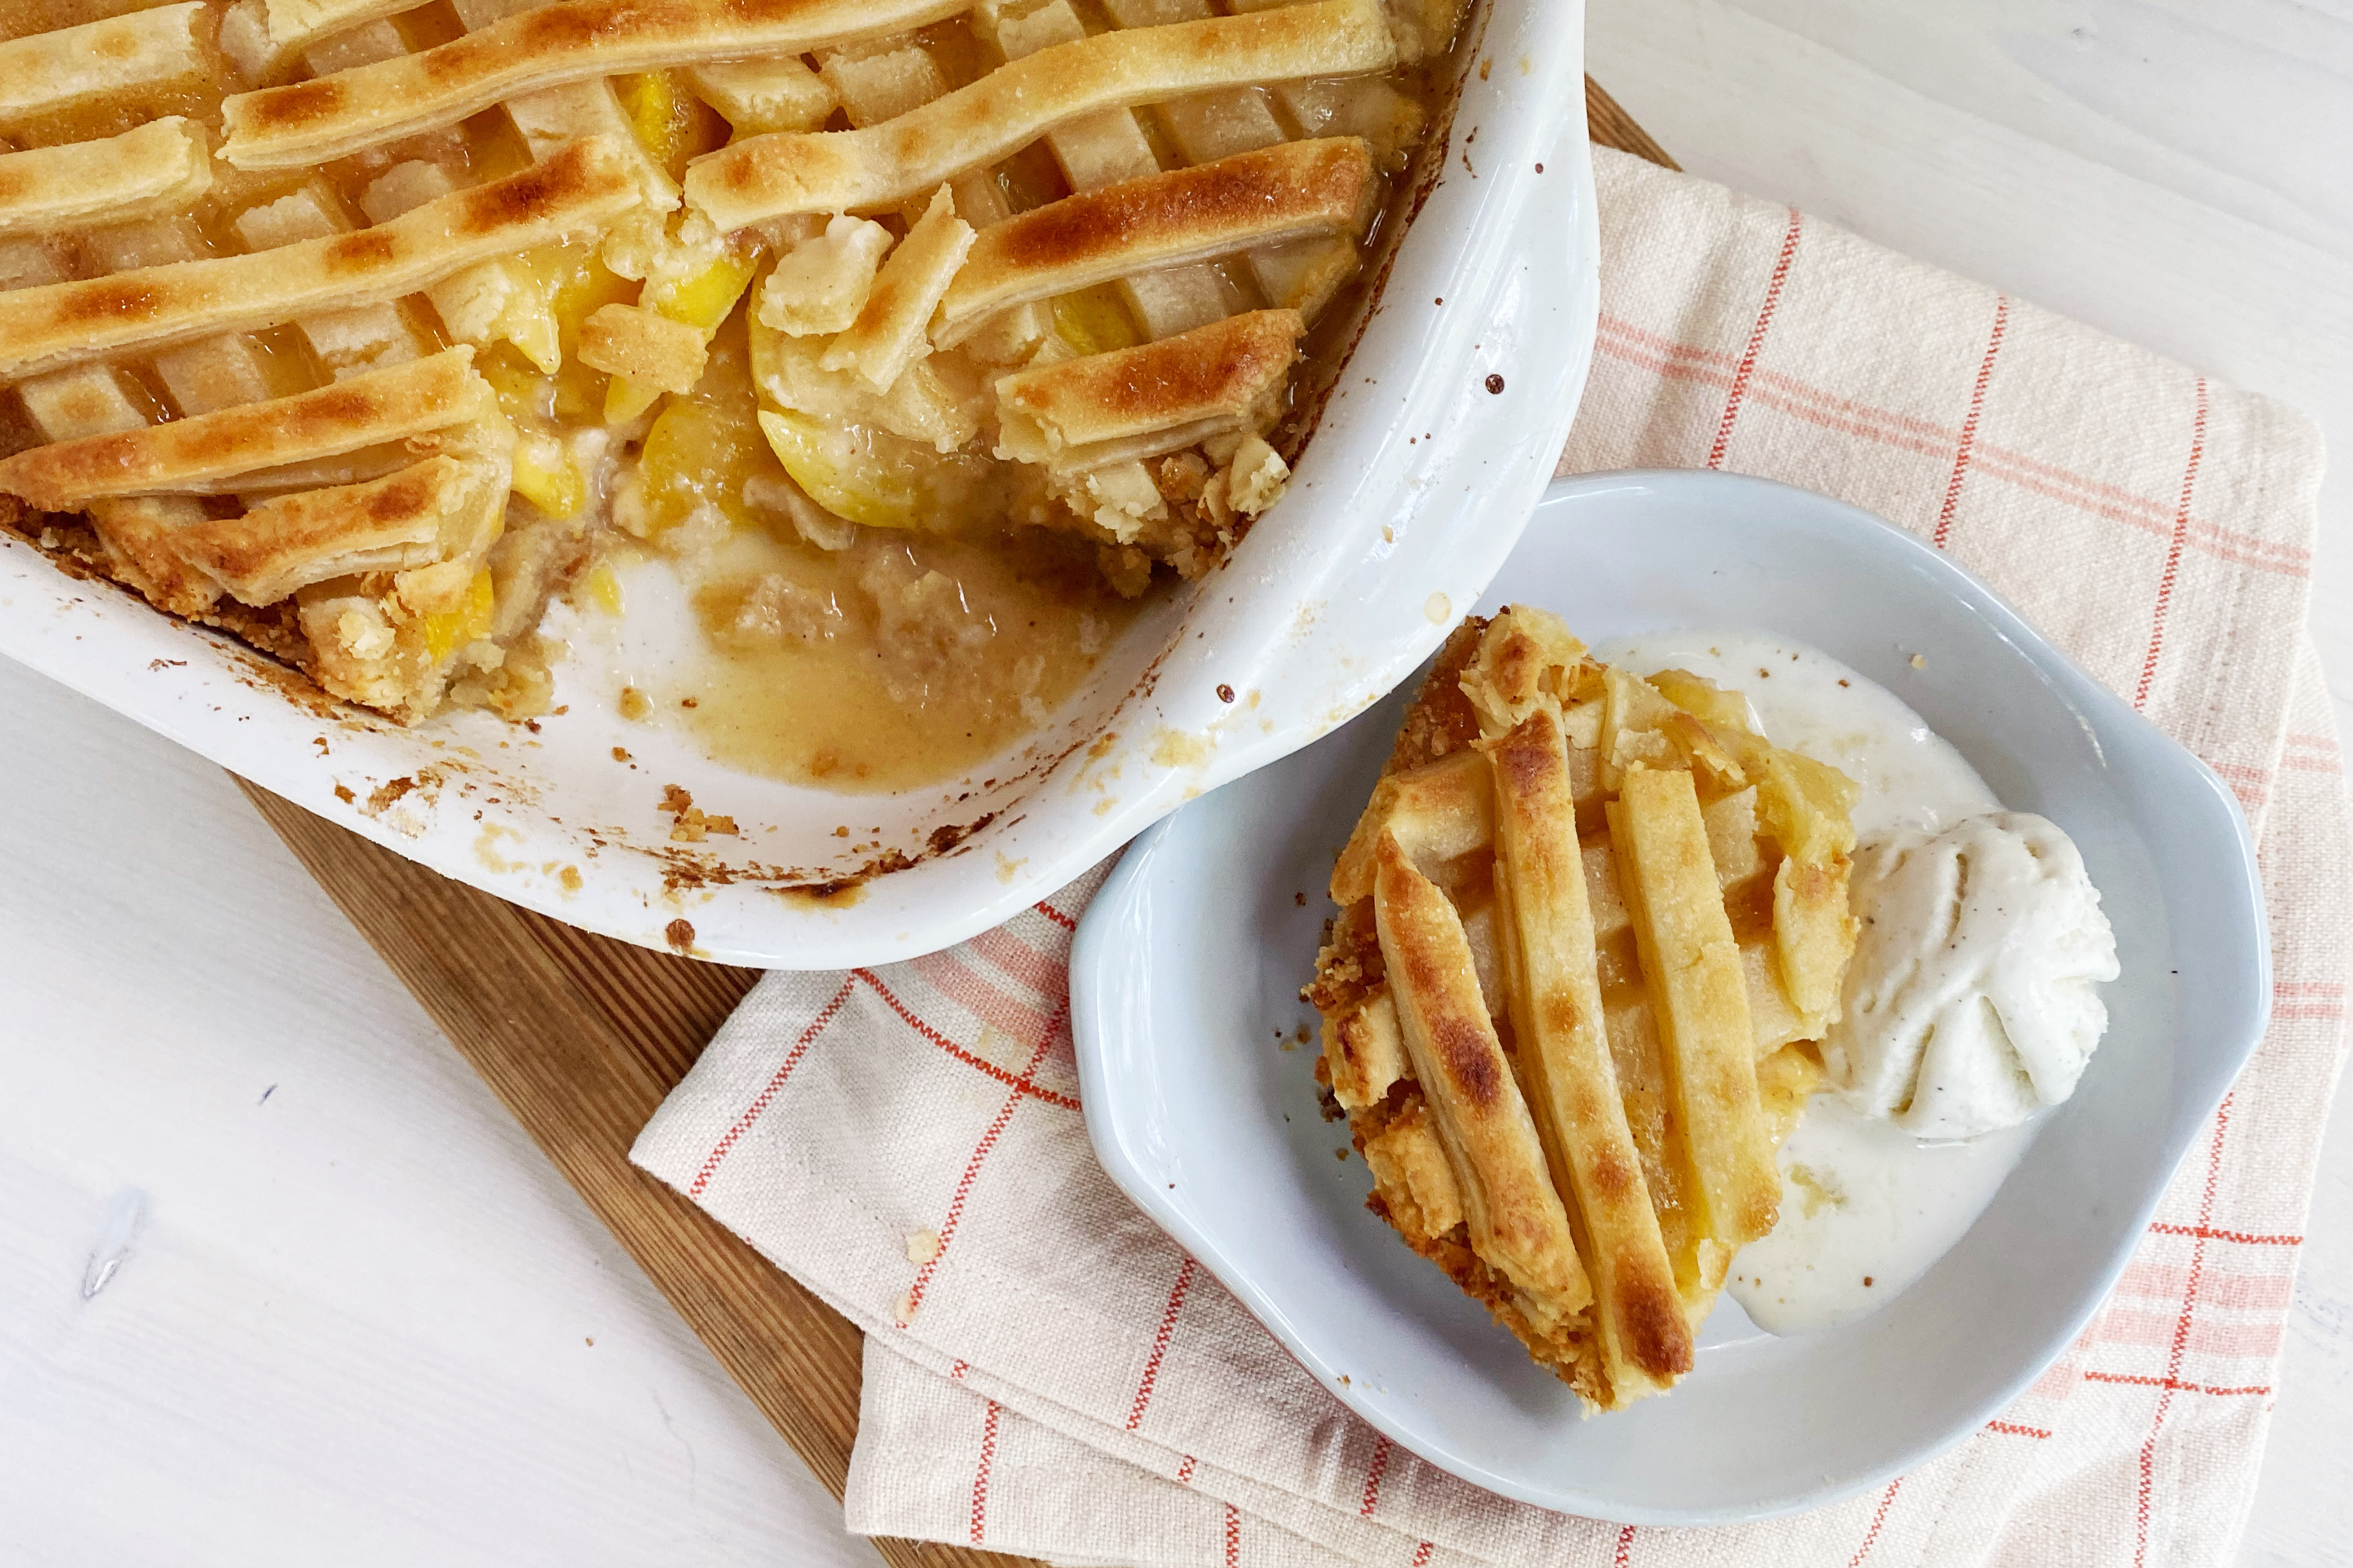 a white casserole dish containing a lattice topped peach cobbler sits cooling on a wooden board. A scoop has been taken out of the casserole dish and is plated with a half melted scoop of vanilla ice cream